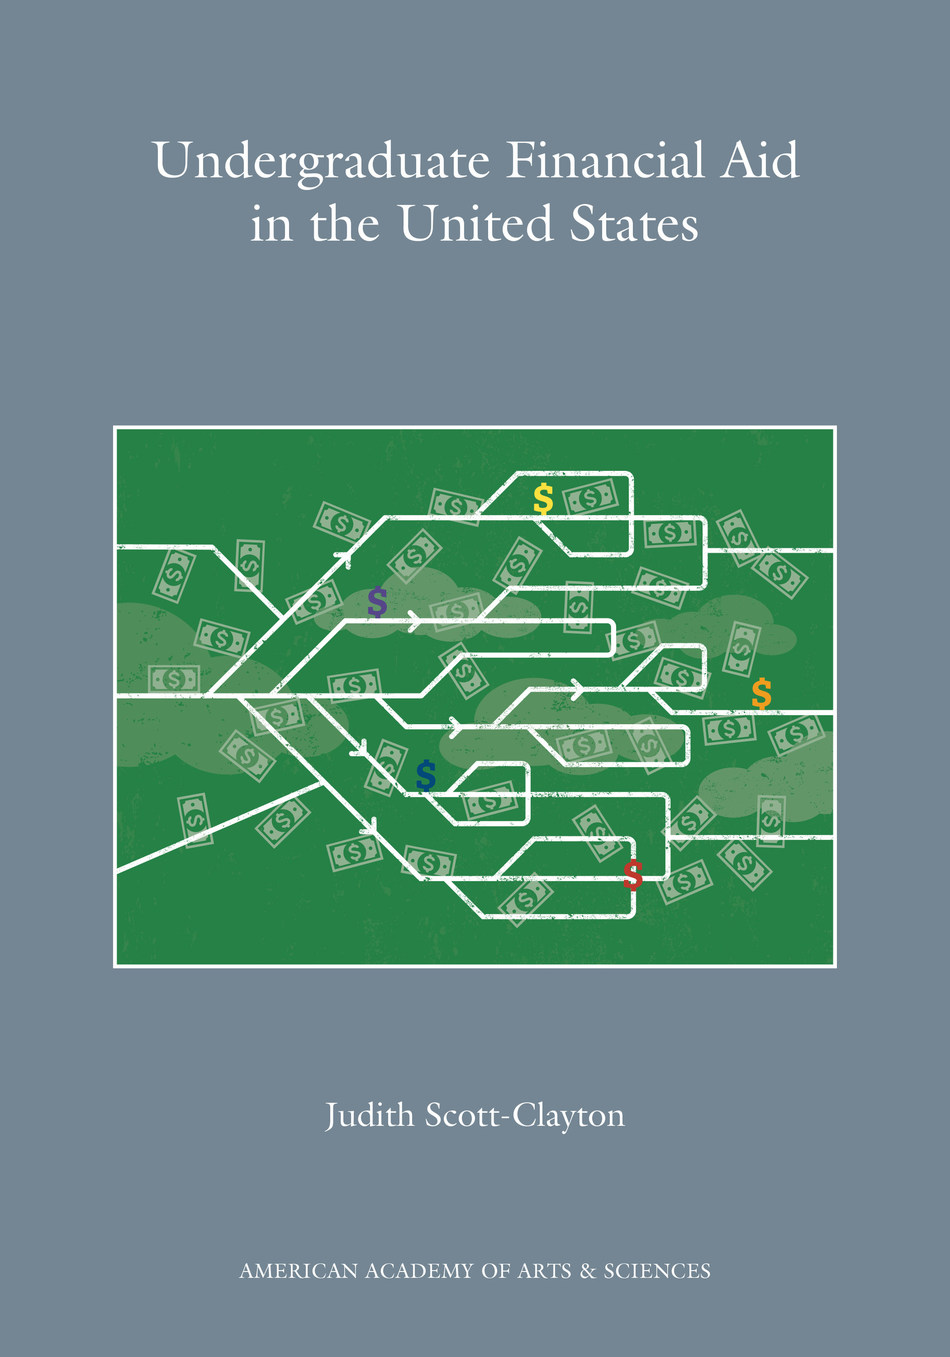 """""""Undergraduate Financial Aid in the United States,"""" authored by Judith Scott-Clayton, is the latest publication from the Commission on the Future of Undergraduate Education."""